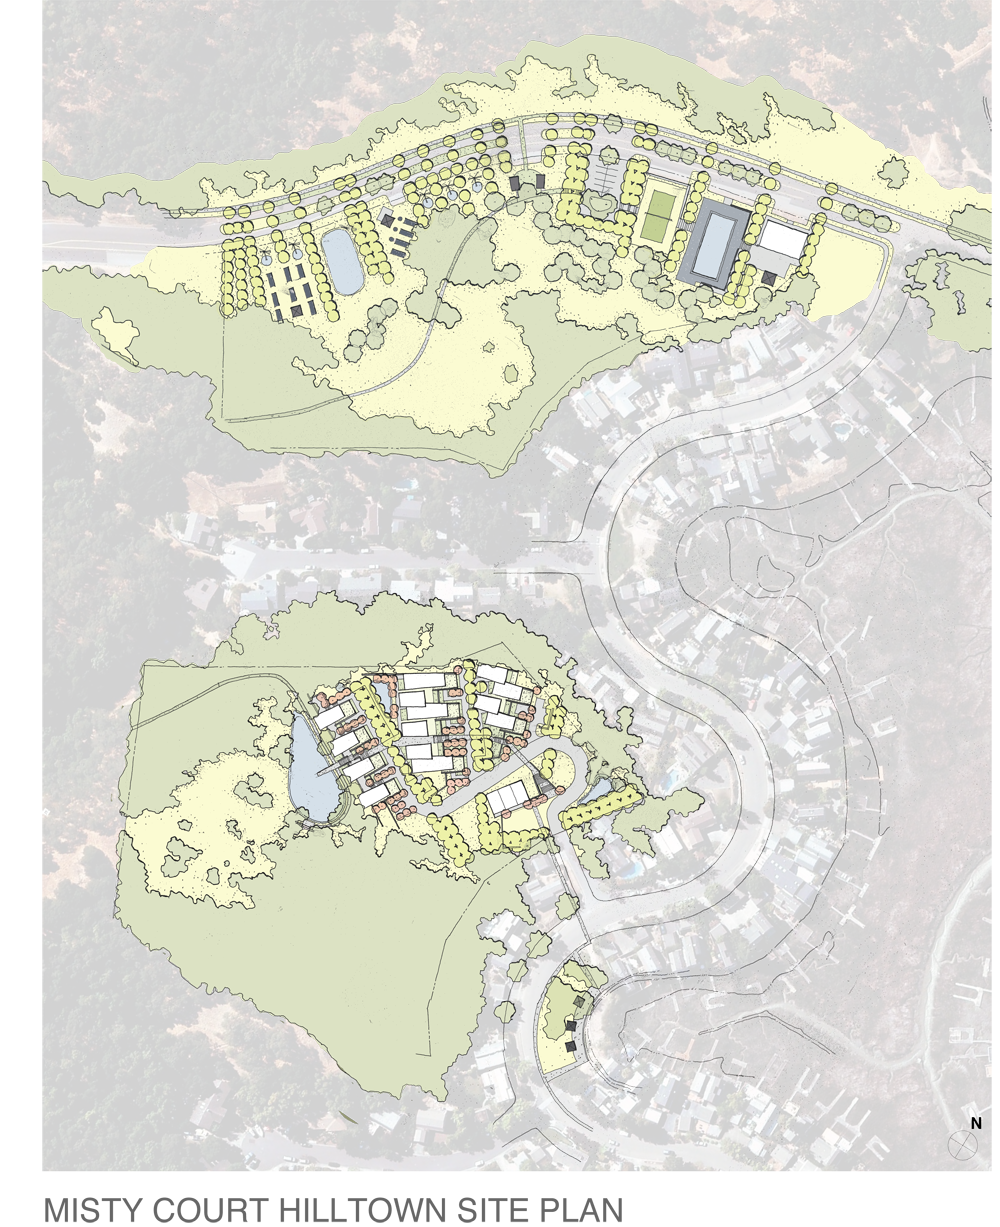 03_Site-Plan-Misty-Ct-Hilltown.png